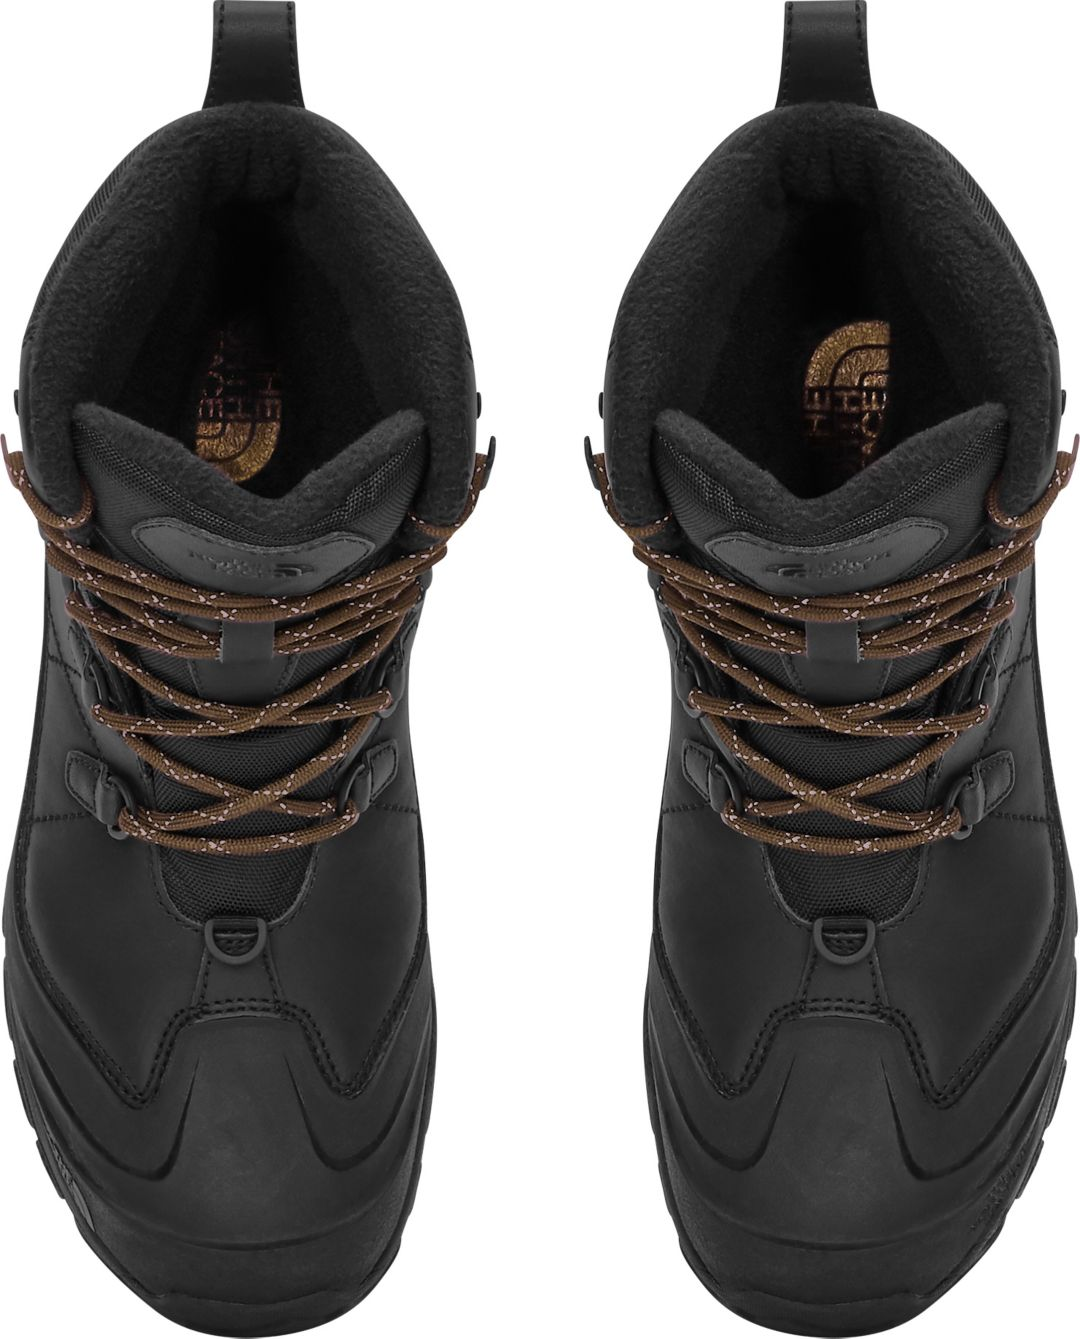 ee8a4b1c0 The North Face Men's Chilkat Evo 200g Waterproof Winter Boots - Past Season